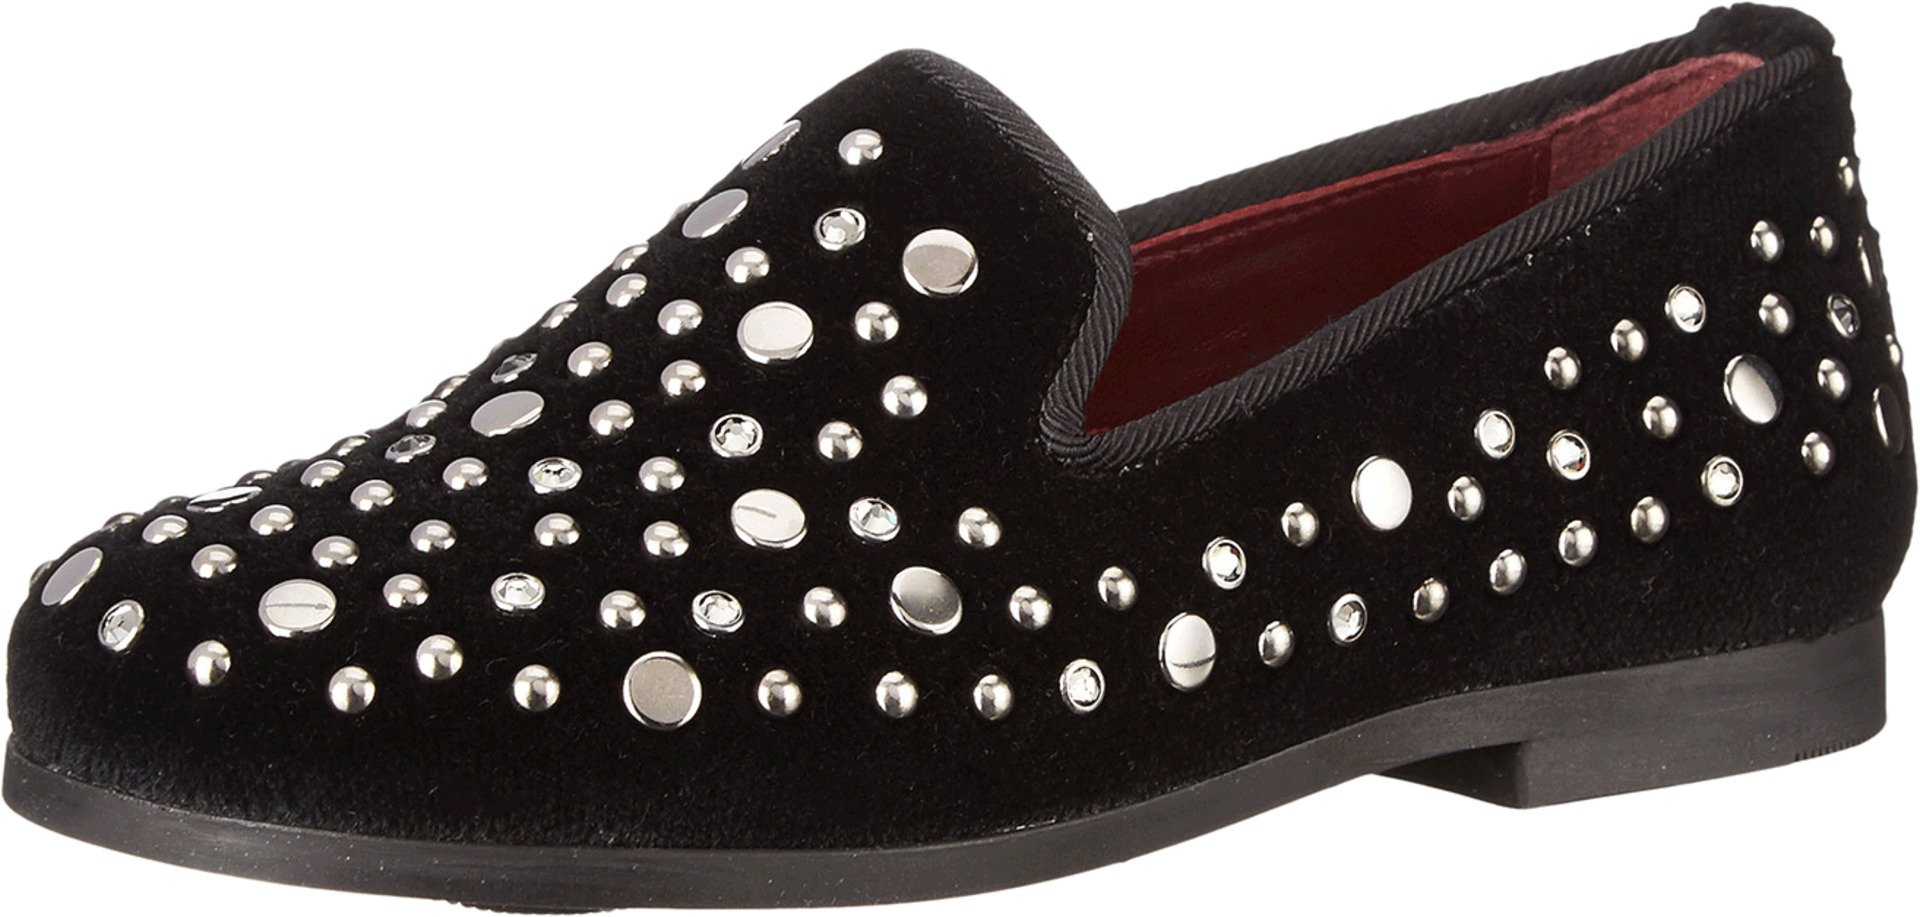 Dolce & Gabbana Kids Boys' Studded Loafer (Little Big Kid), Black, 27 (US 10 Toddler) M